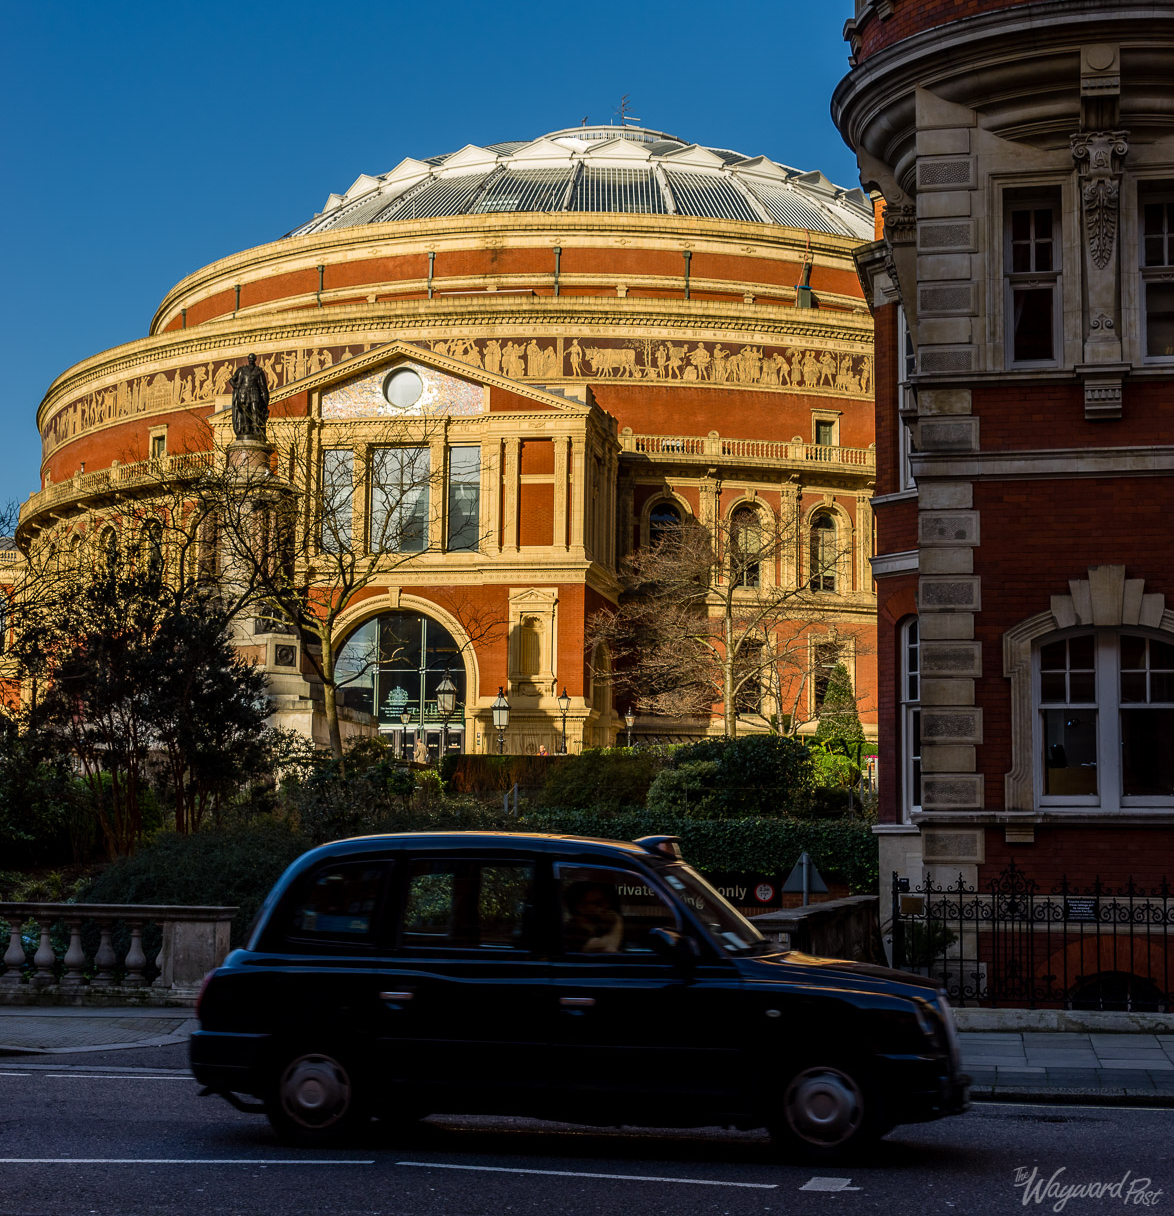 The Royal Albert Hall and London Taxi.Photo by Zygmunt Spray.